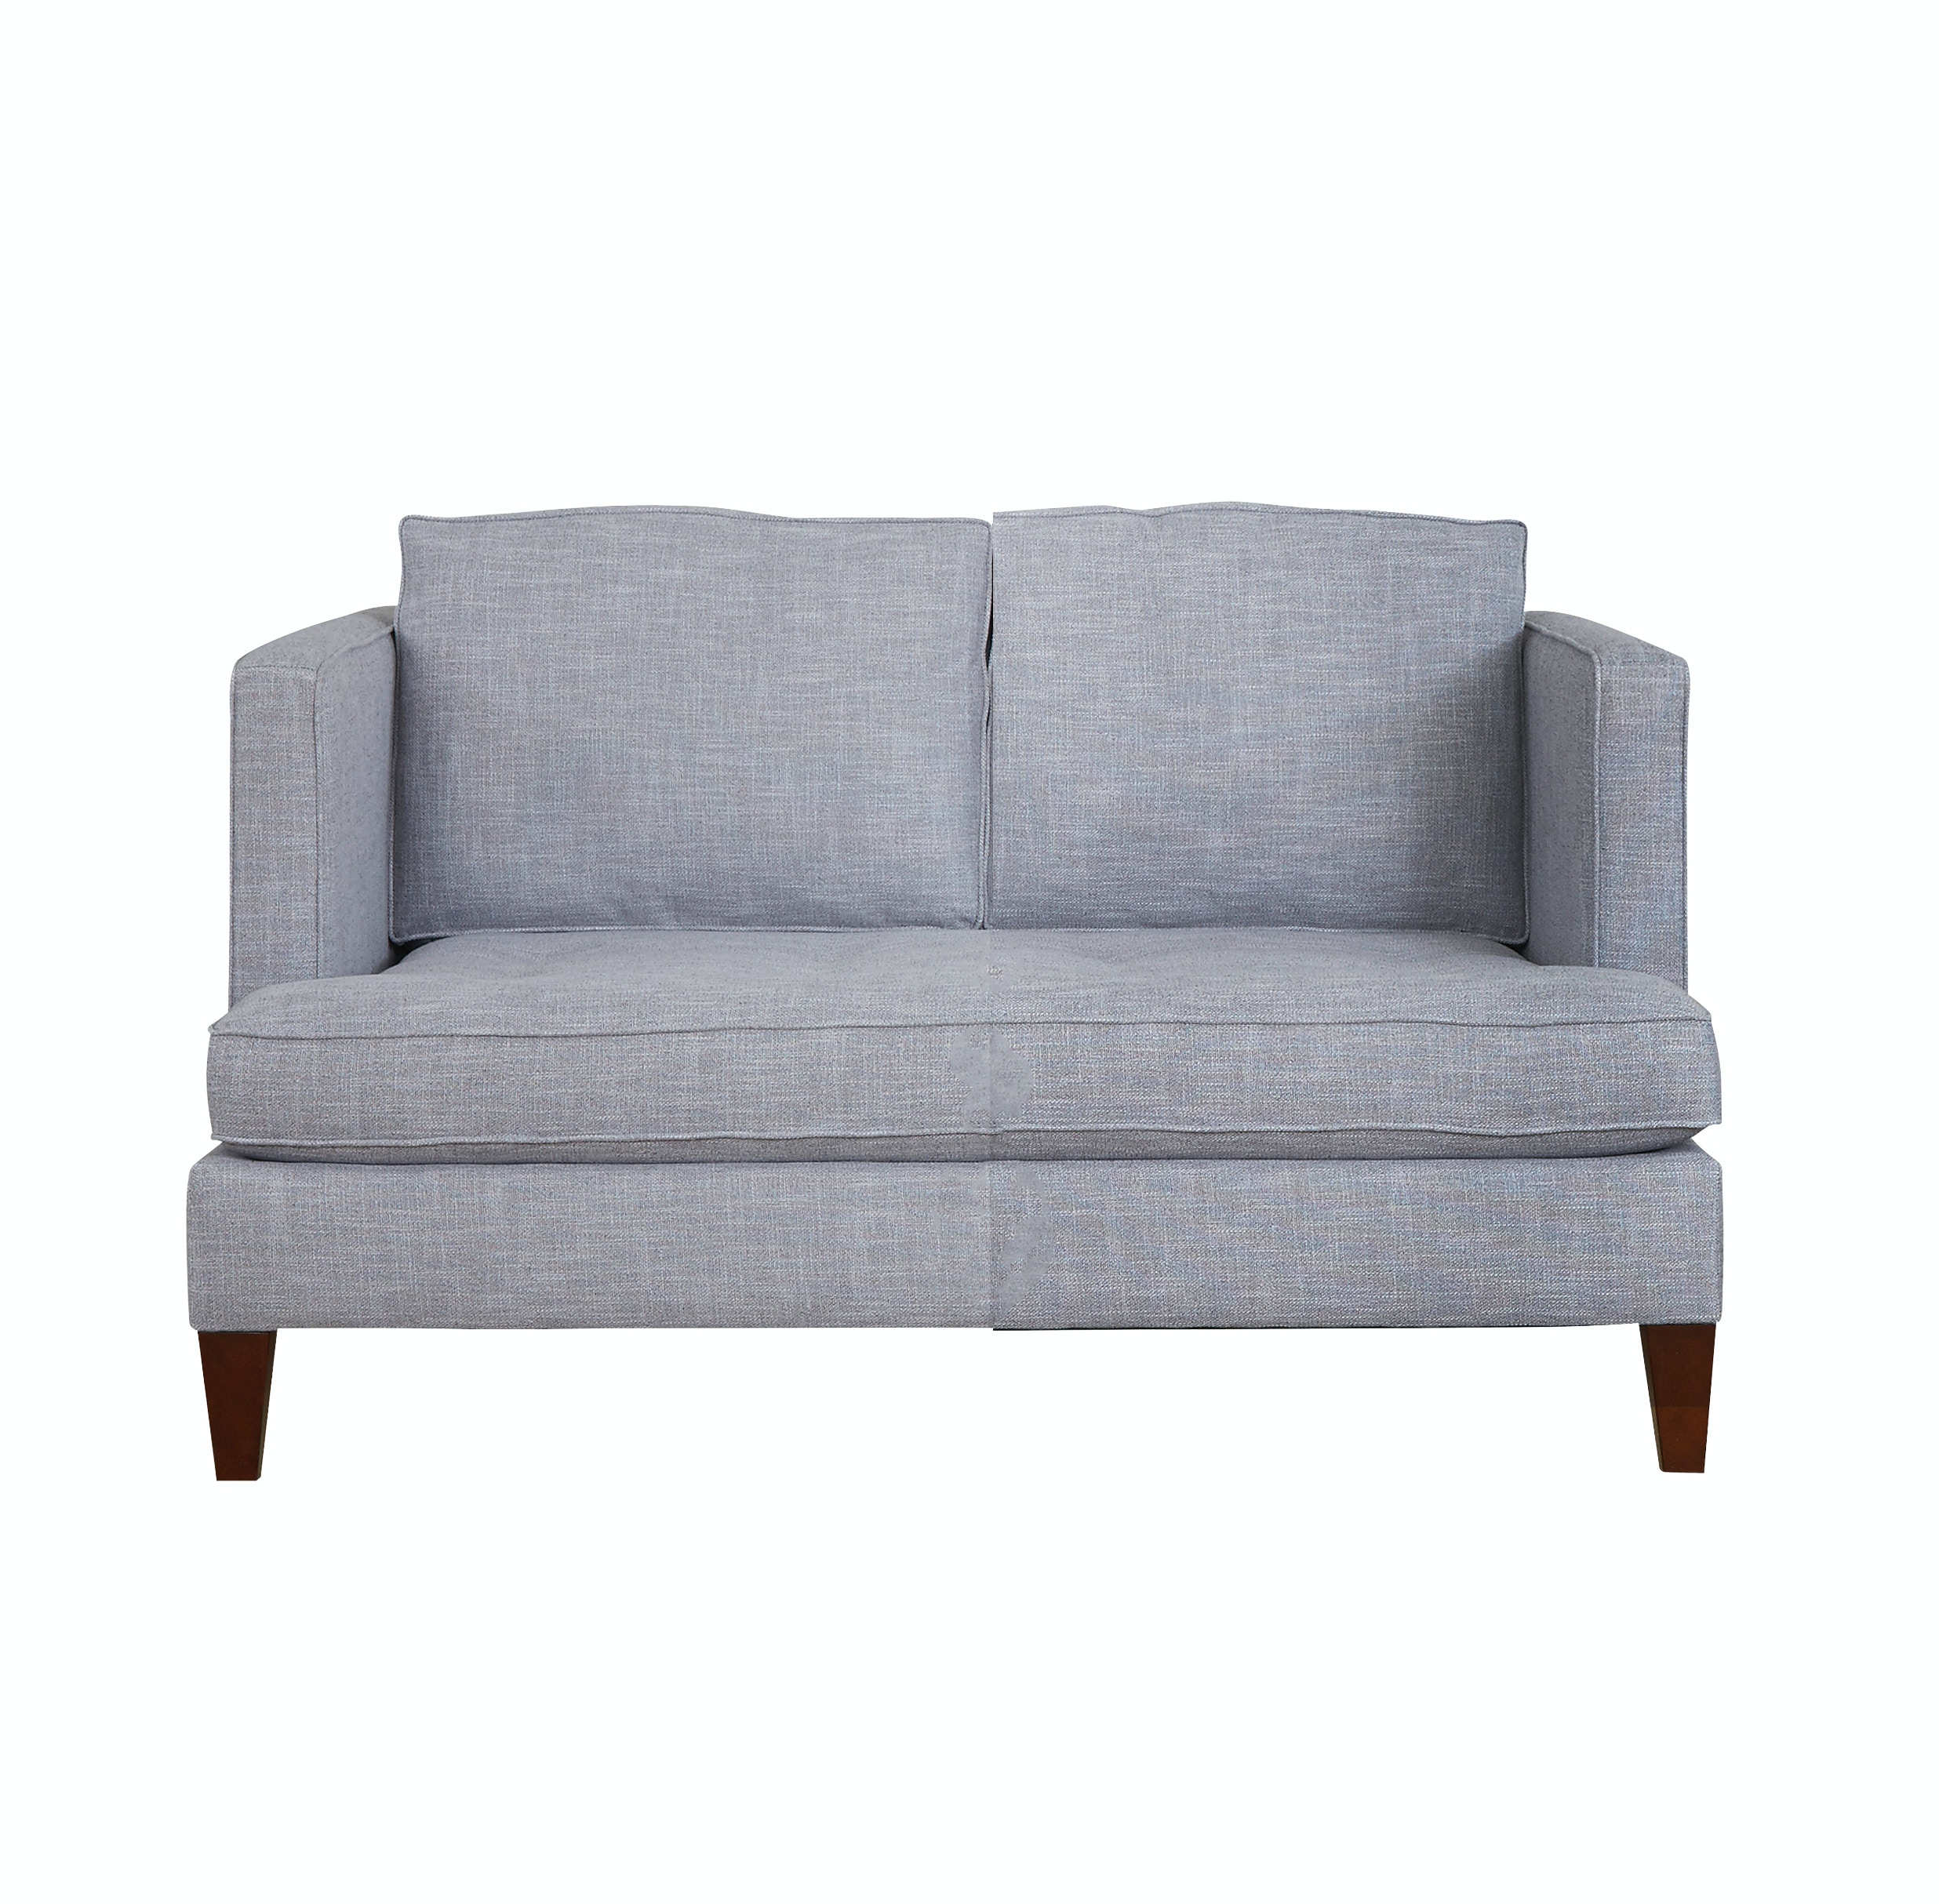 Living Room Loveseats Walter E Smithe Furniture And Design 10